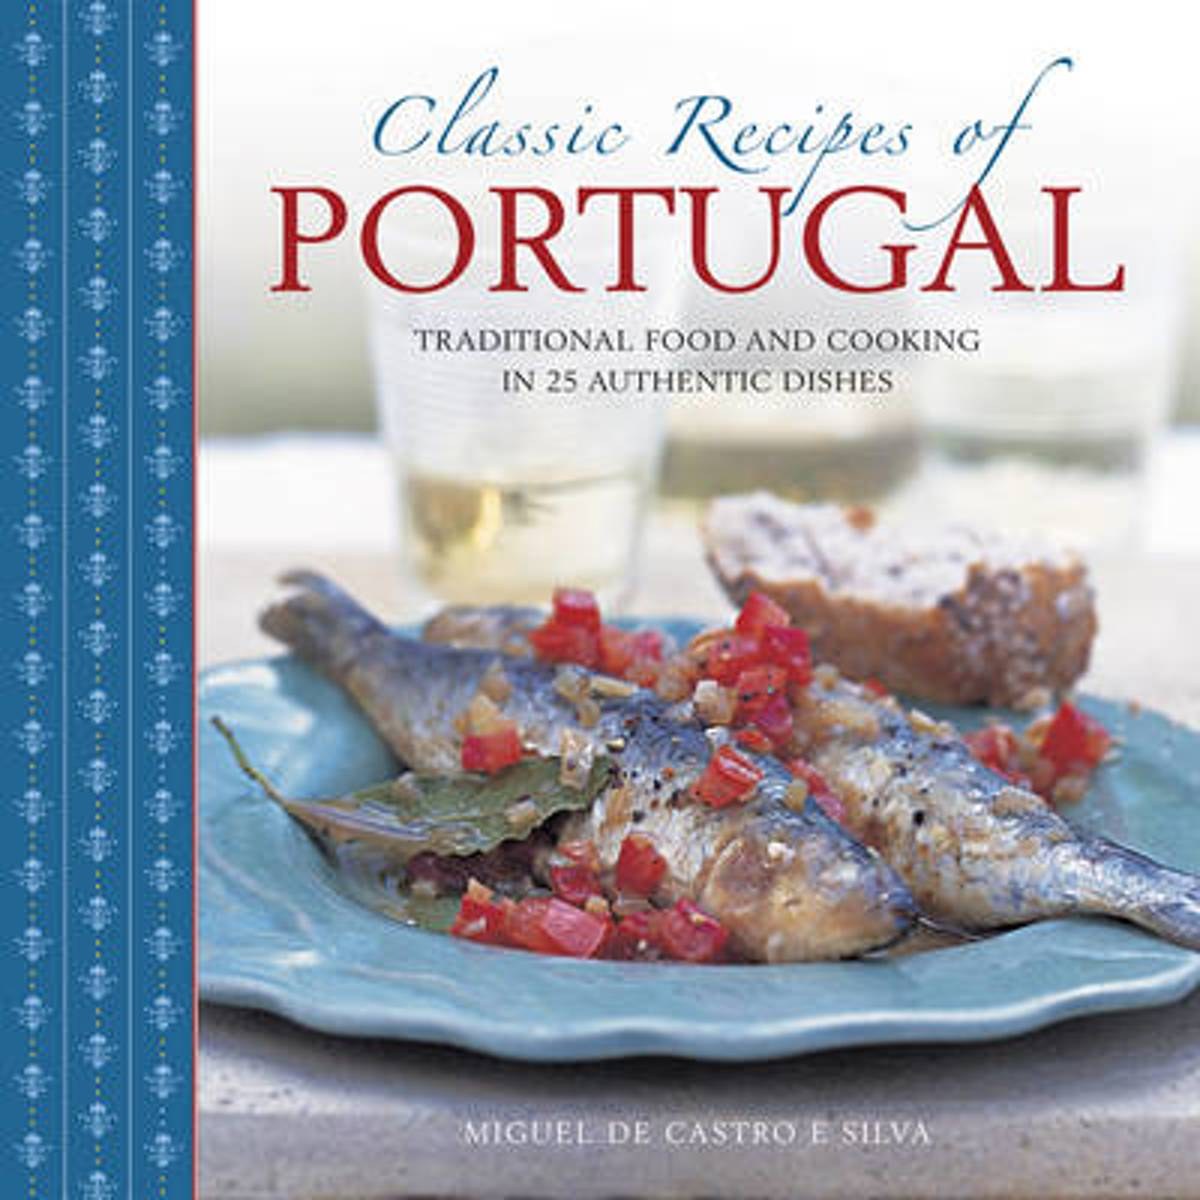 Classis Recipes of Portugal